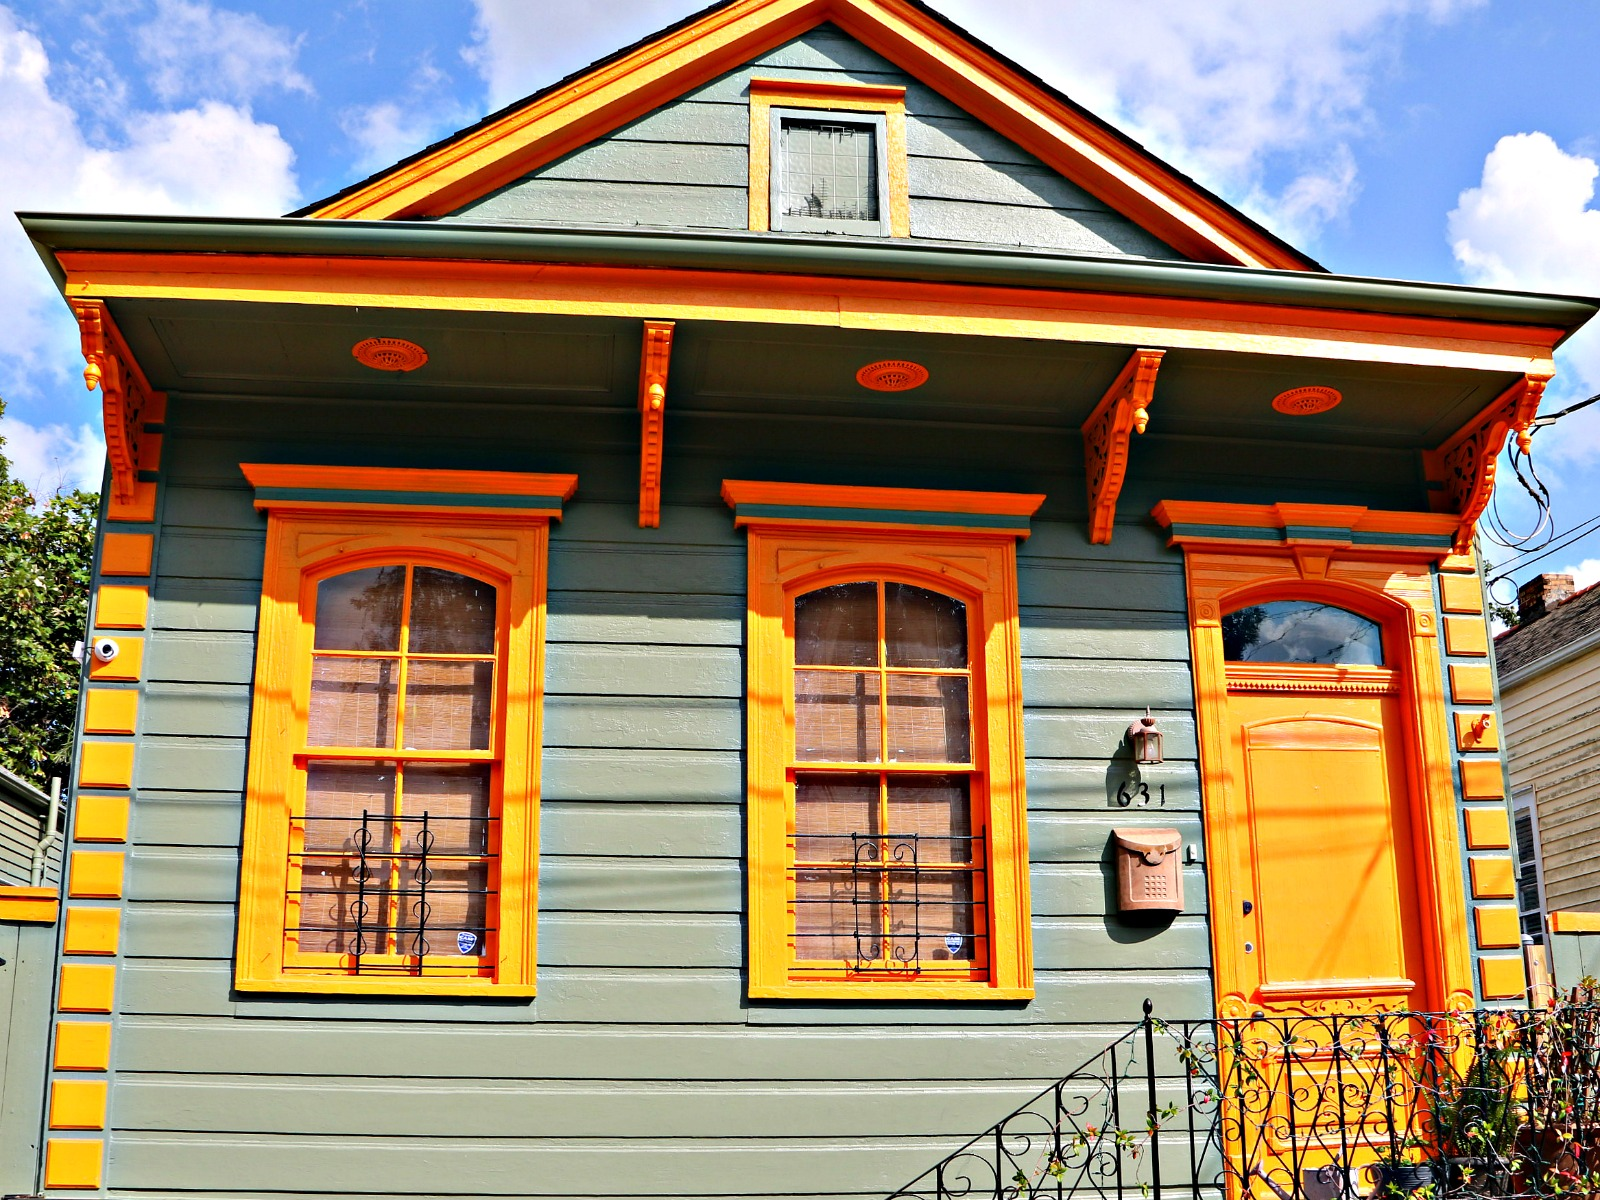 Bright and Colorful Bywater Homes in New Orleans